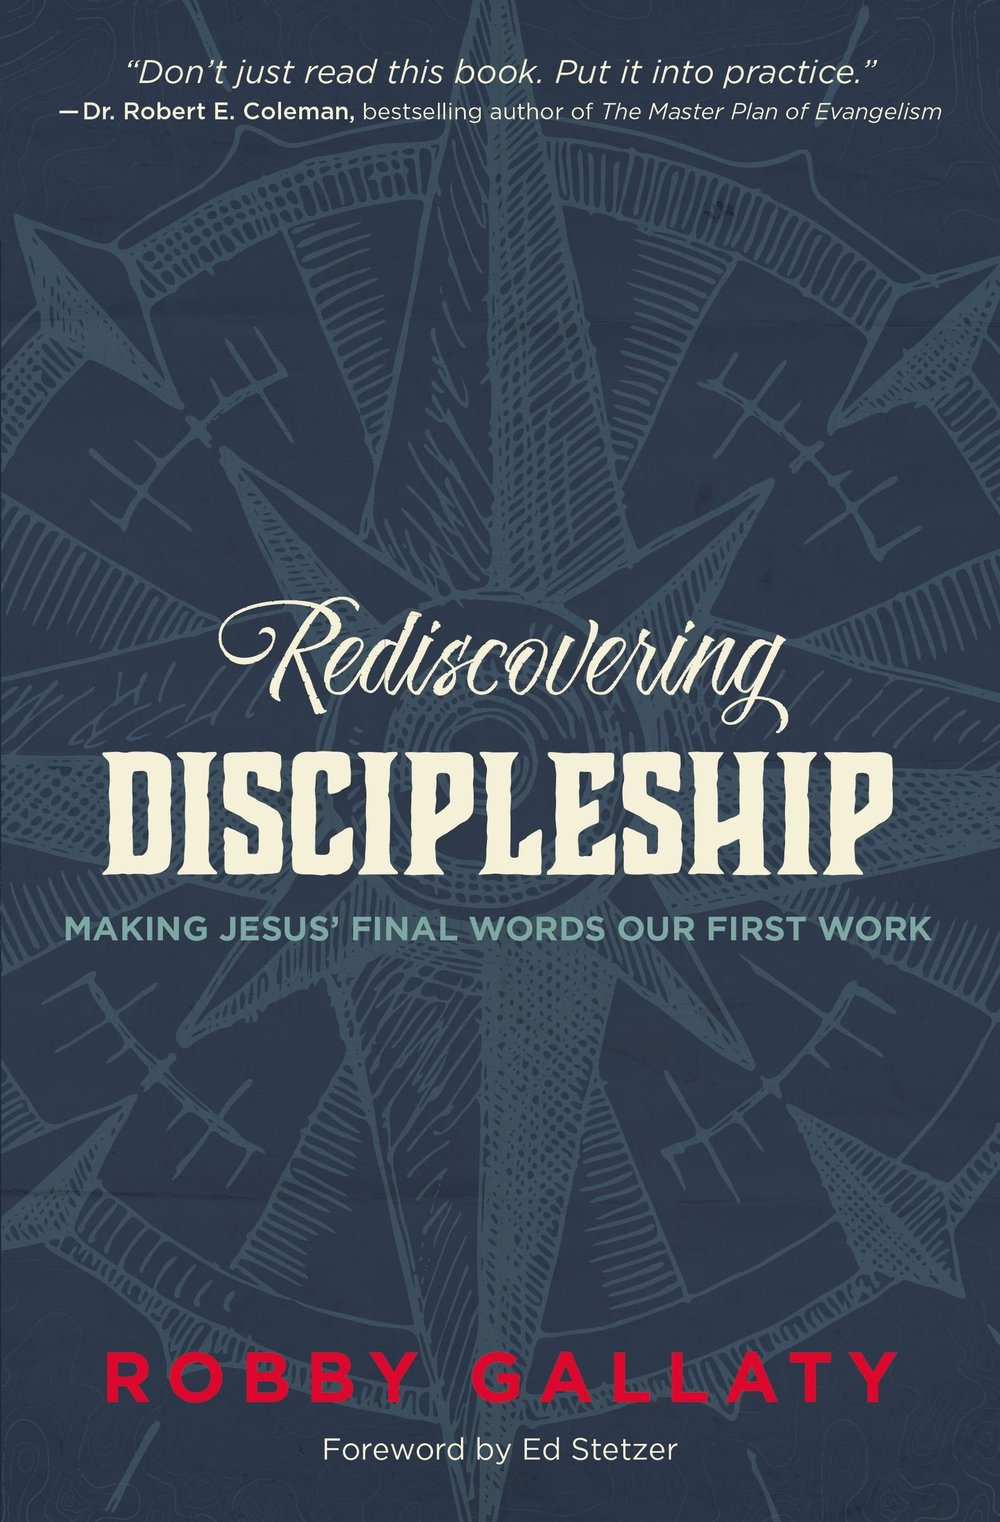 Rediscovering Discipleship - by Robby Gallaty